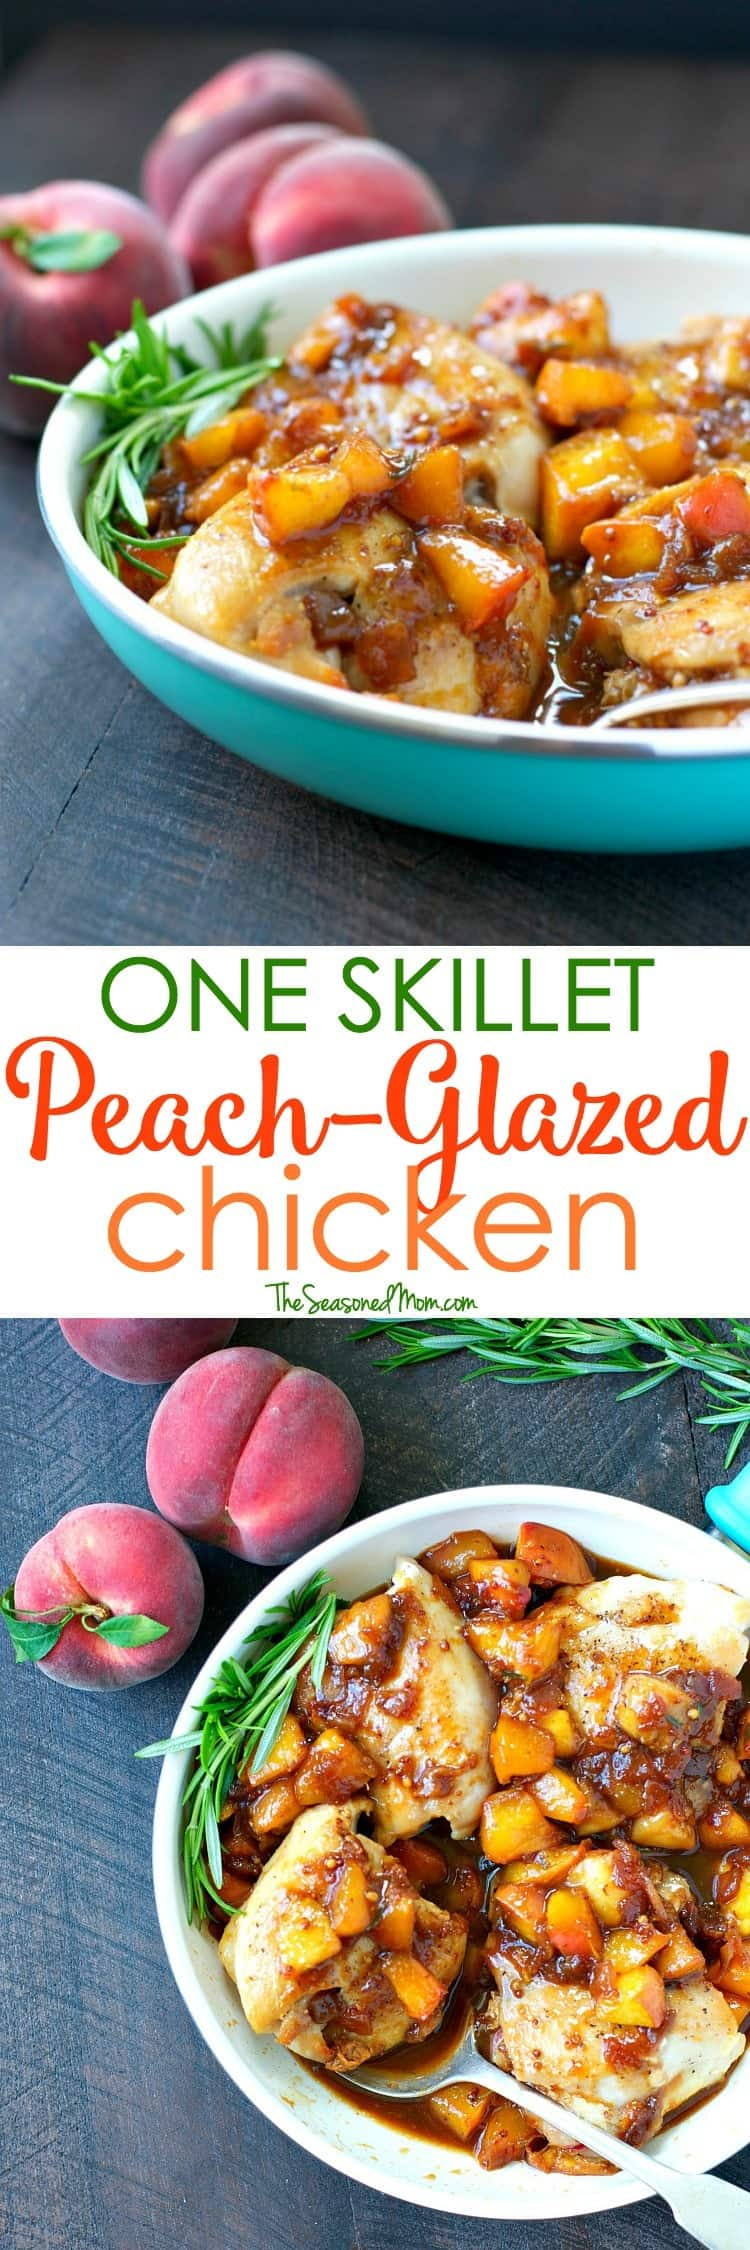 A healthy dinner is ready with only 5 minutes of preparation! This One Skillet Peach Glazed Chicken is a fast, fresh, and family-friendly meal to take advantage of summer's produce!